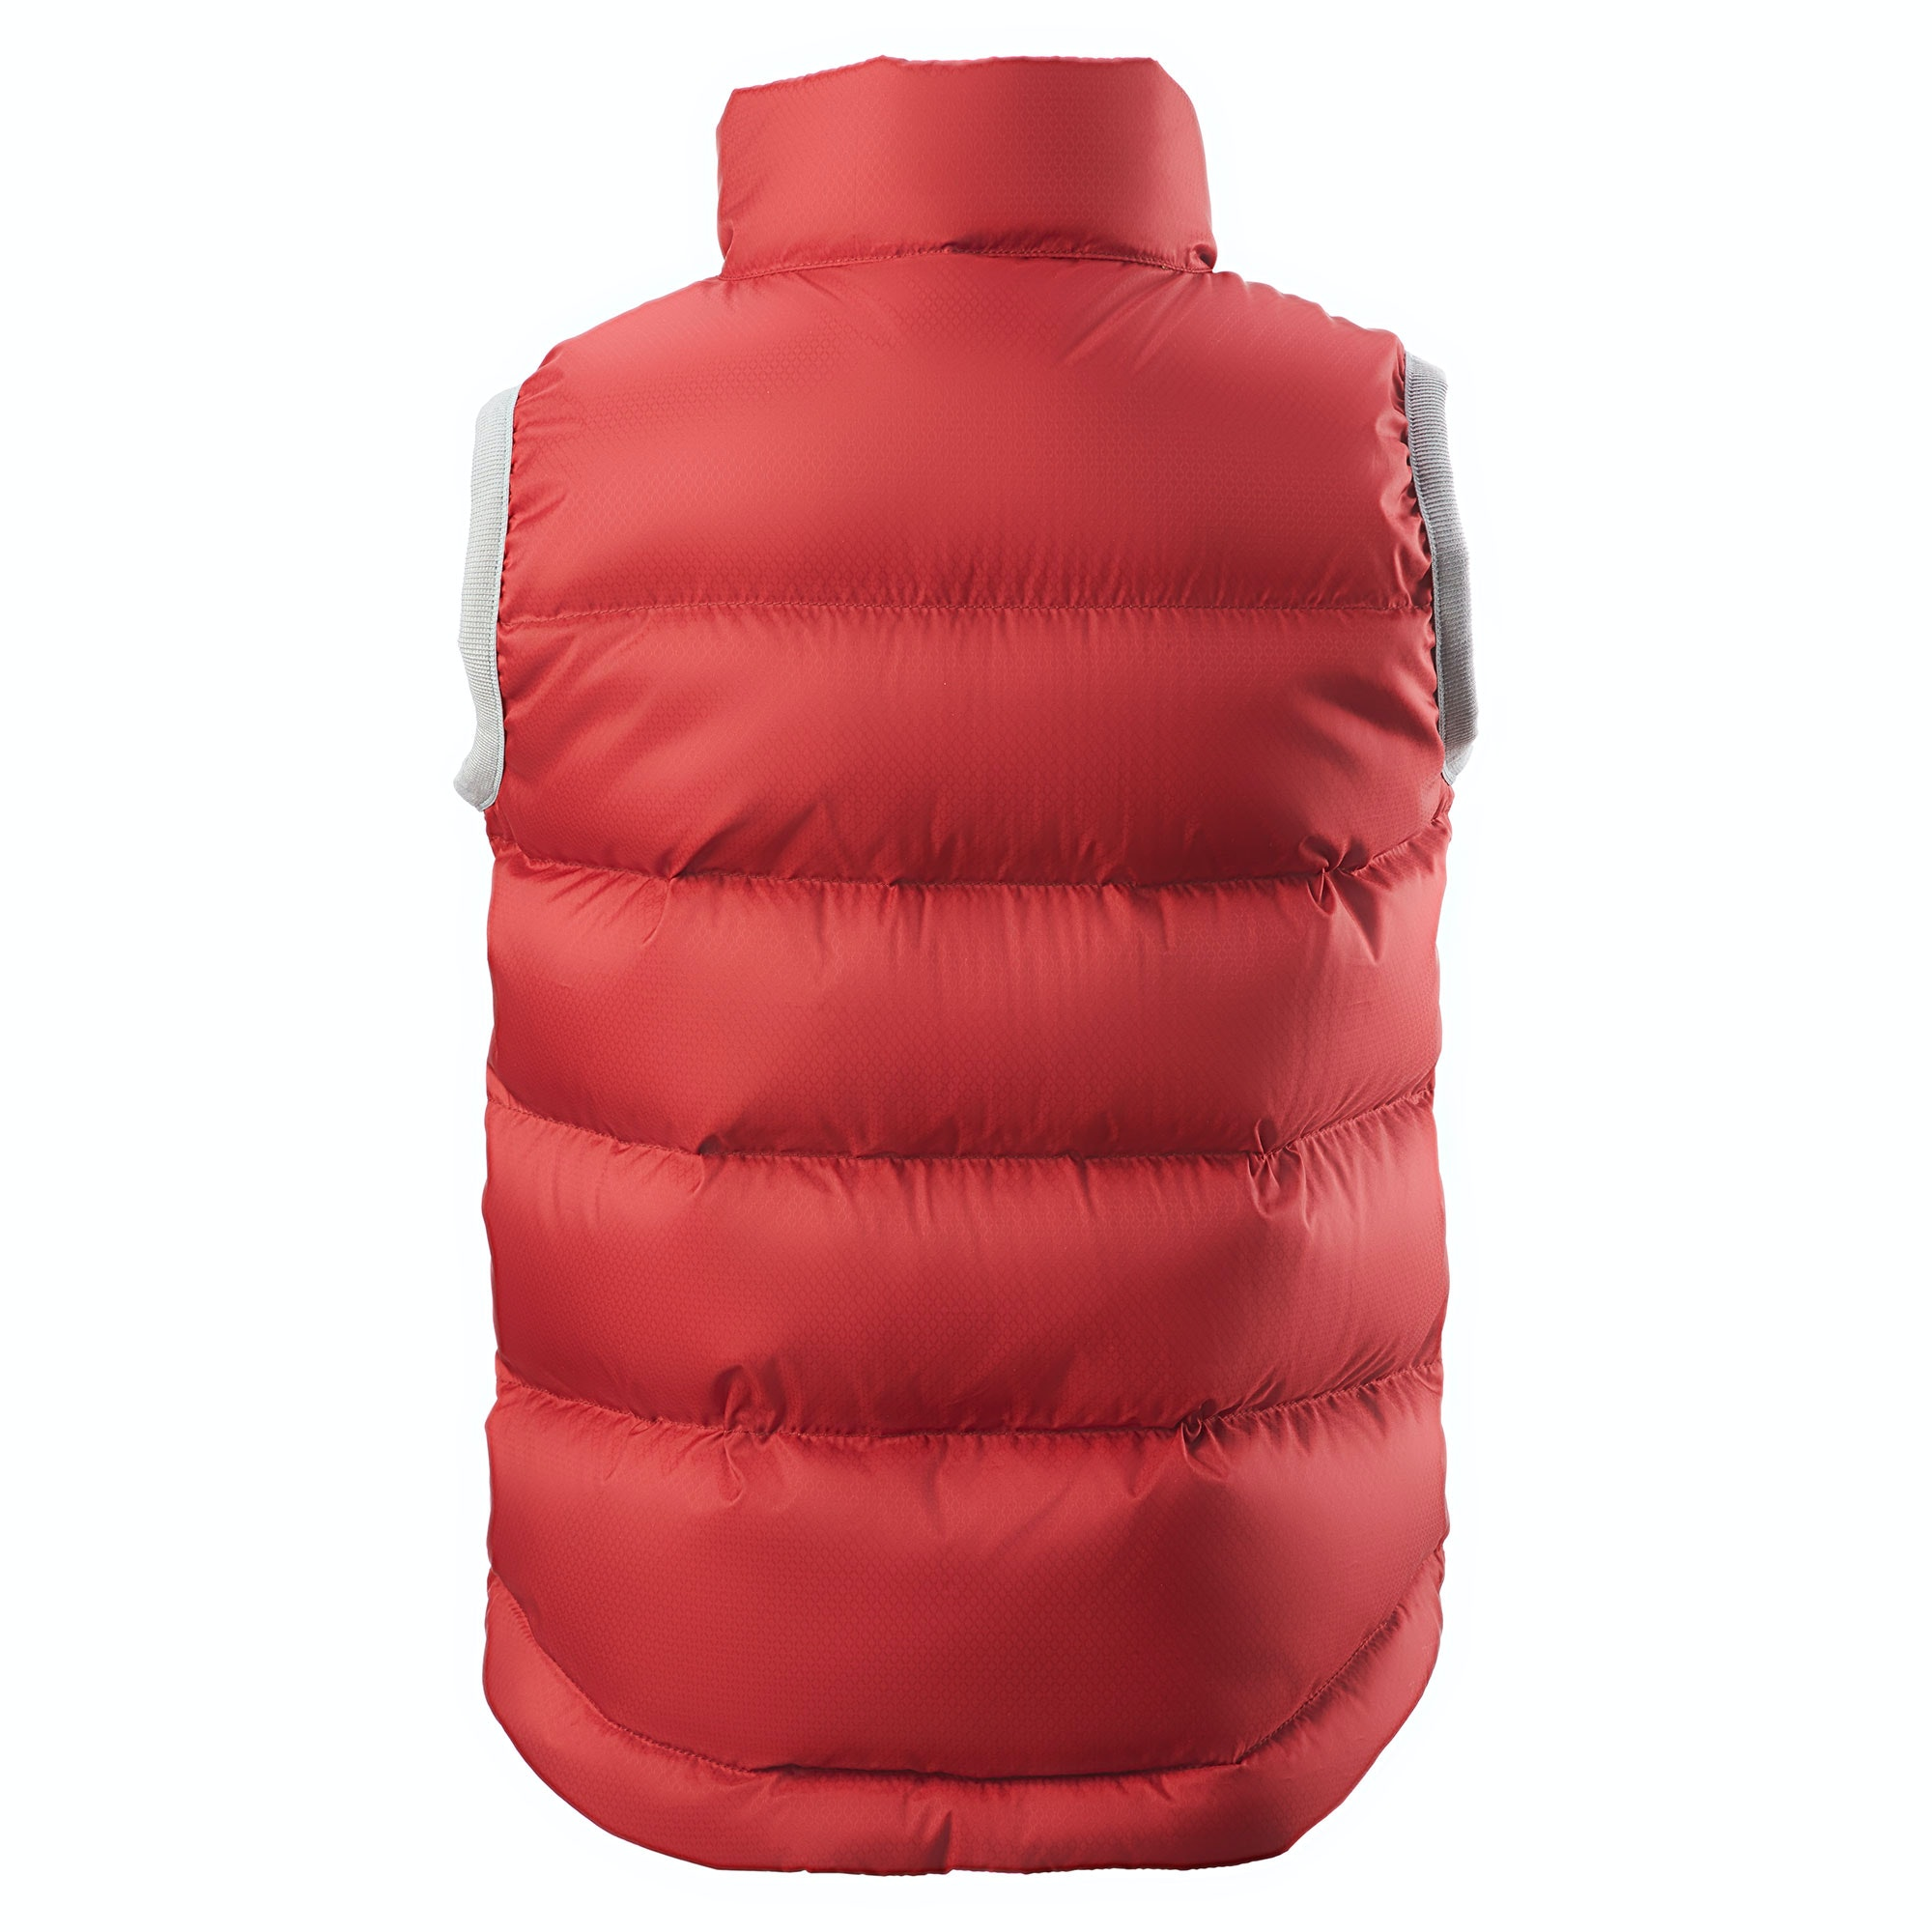 NEW-Kathmandu-Elcho-Kids-039-Boys-039-Girls-039-Warm-Winter-Outdoor-Duck-Down-Puffer-Vest thumbnail 21